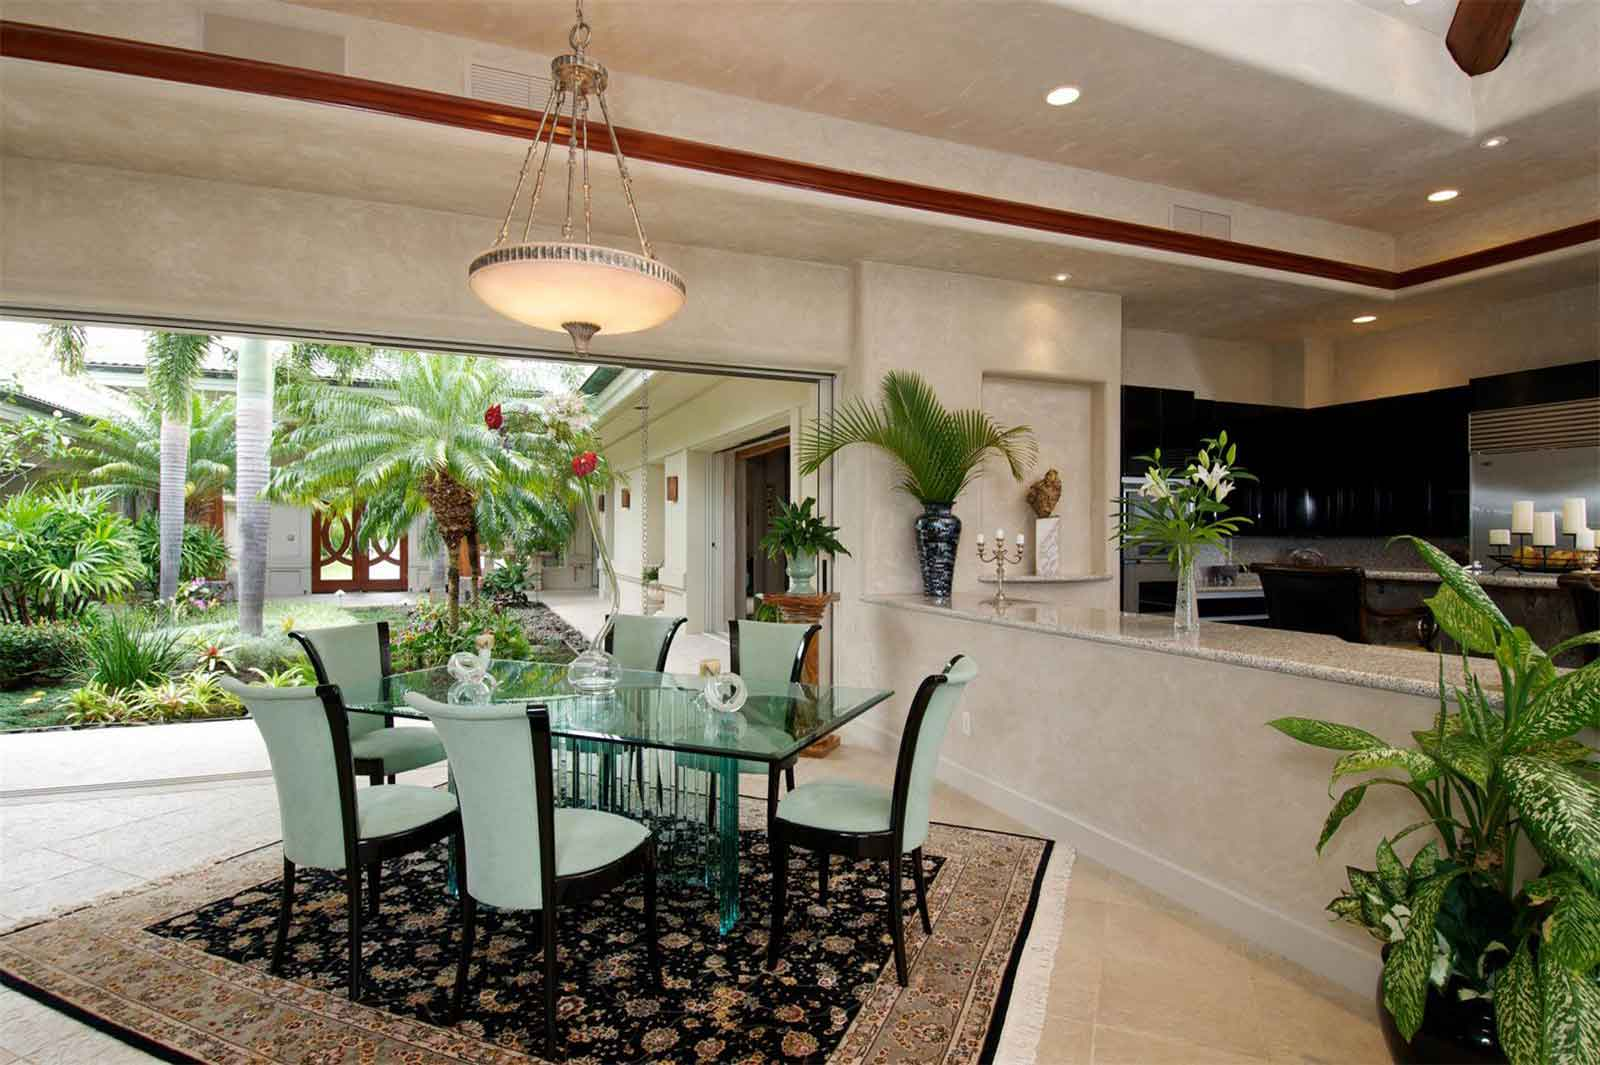 Nature is on prominent display throughout Verde Pacifica's 6,000 square feet of exotic indoor-outdoor interior spaces. The atrium features Ohia trees, while the lush indoor garden is graced with palm trees and flowering plants.